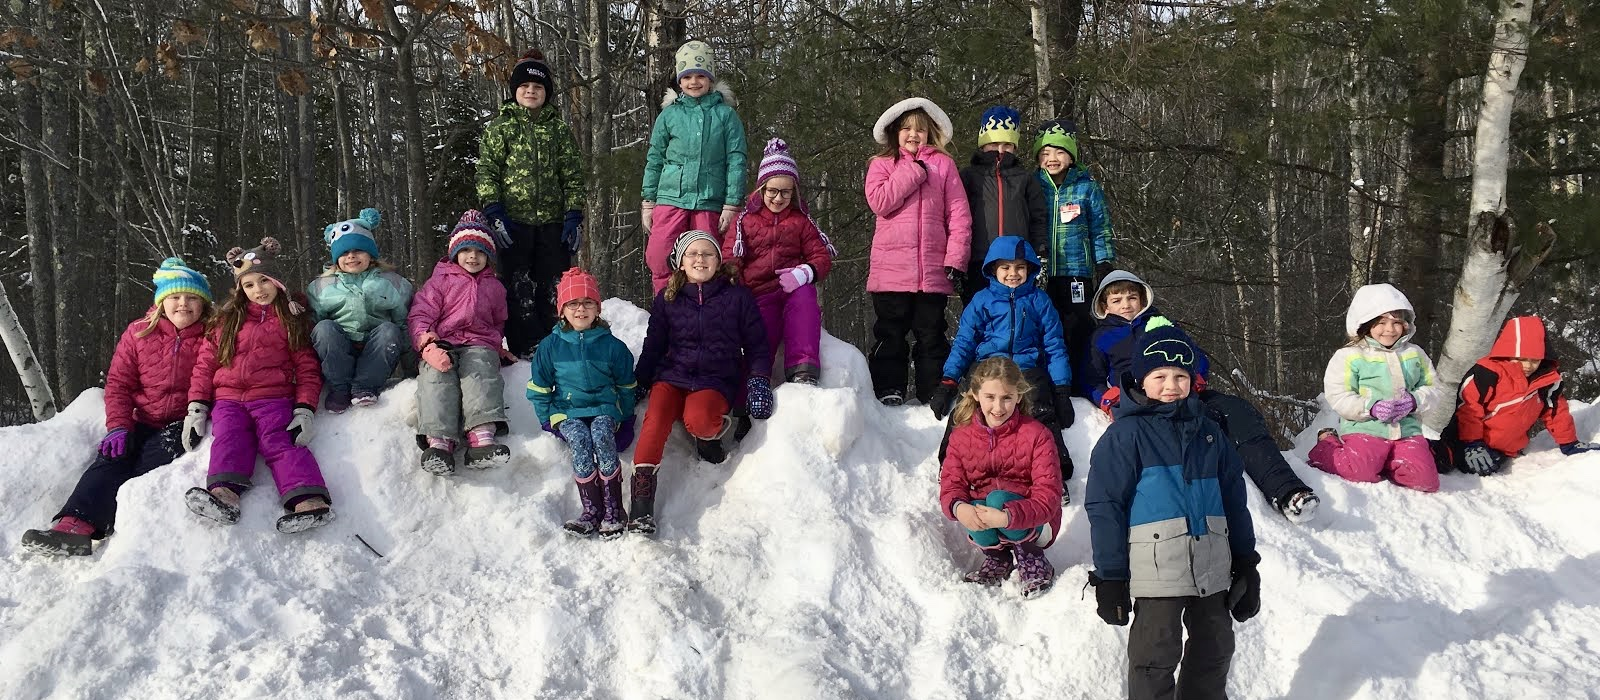 Recess in the snow.